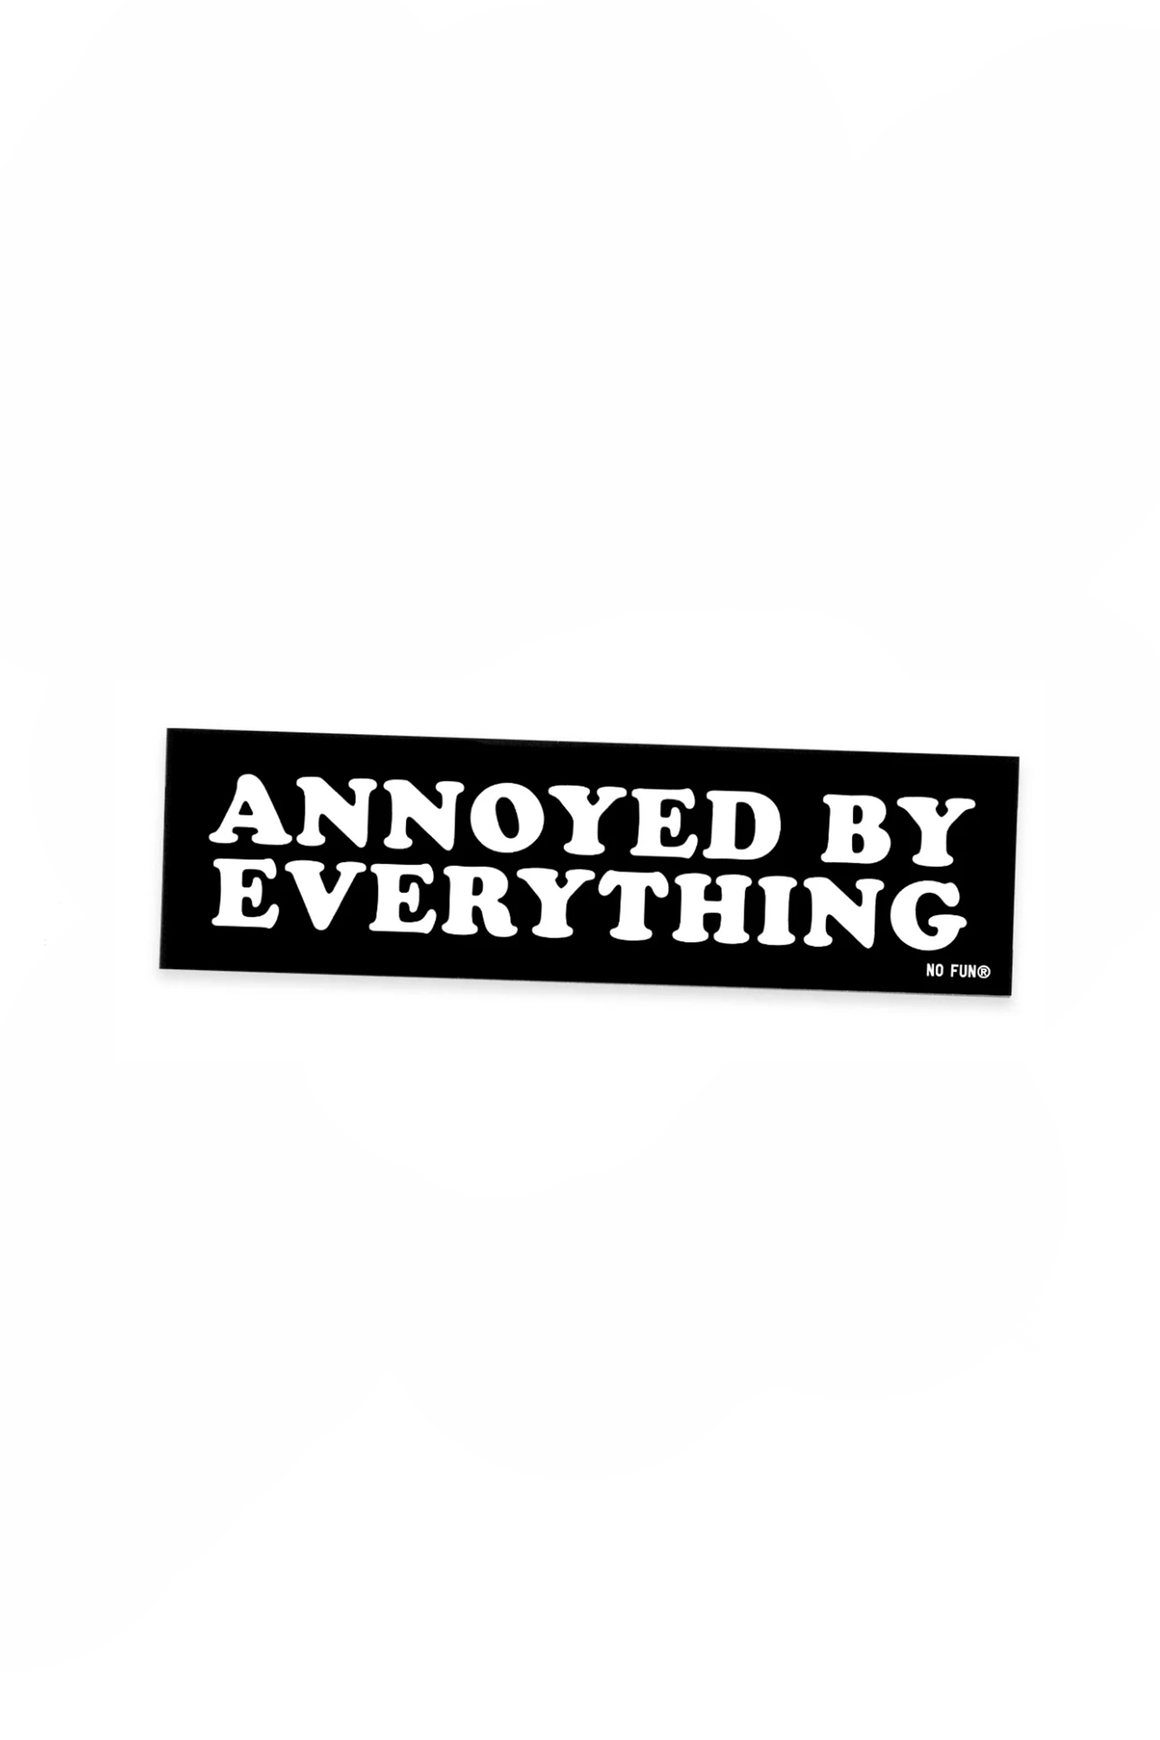 Annoyed By Everything Bumper Sticker